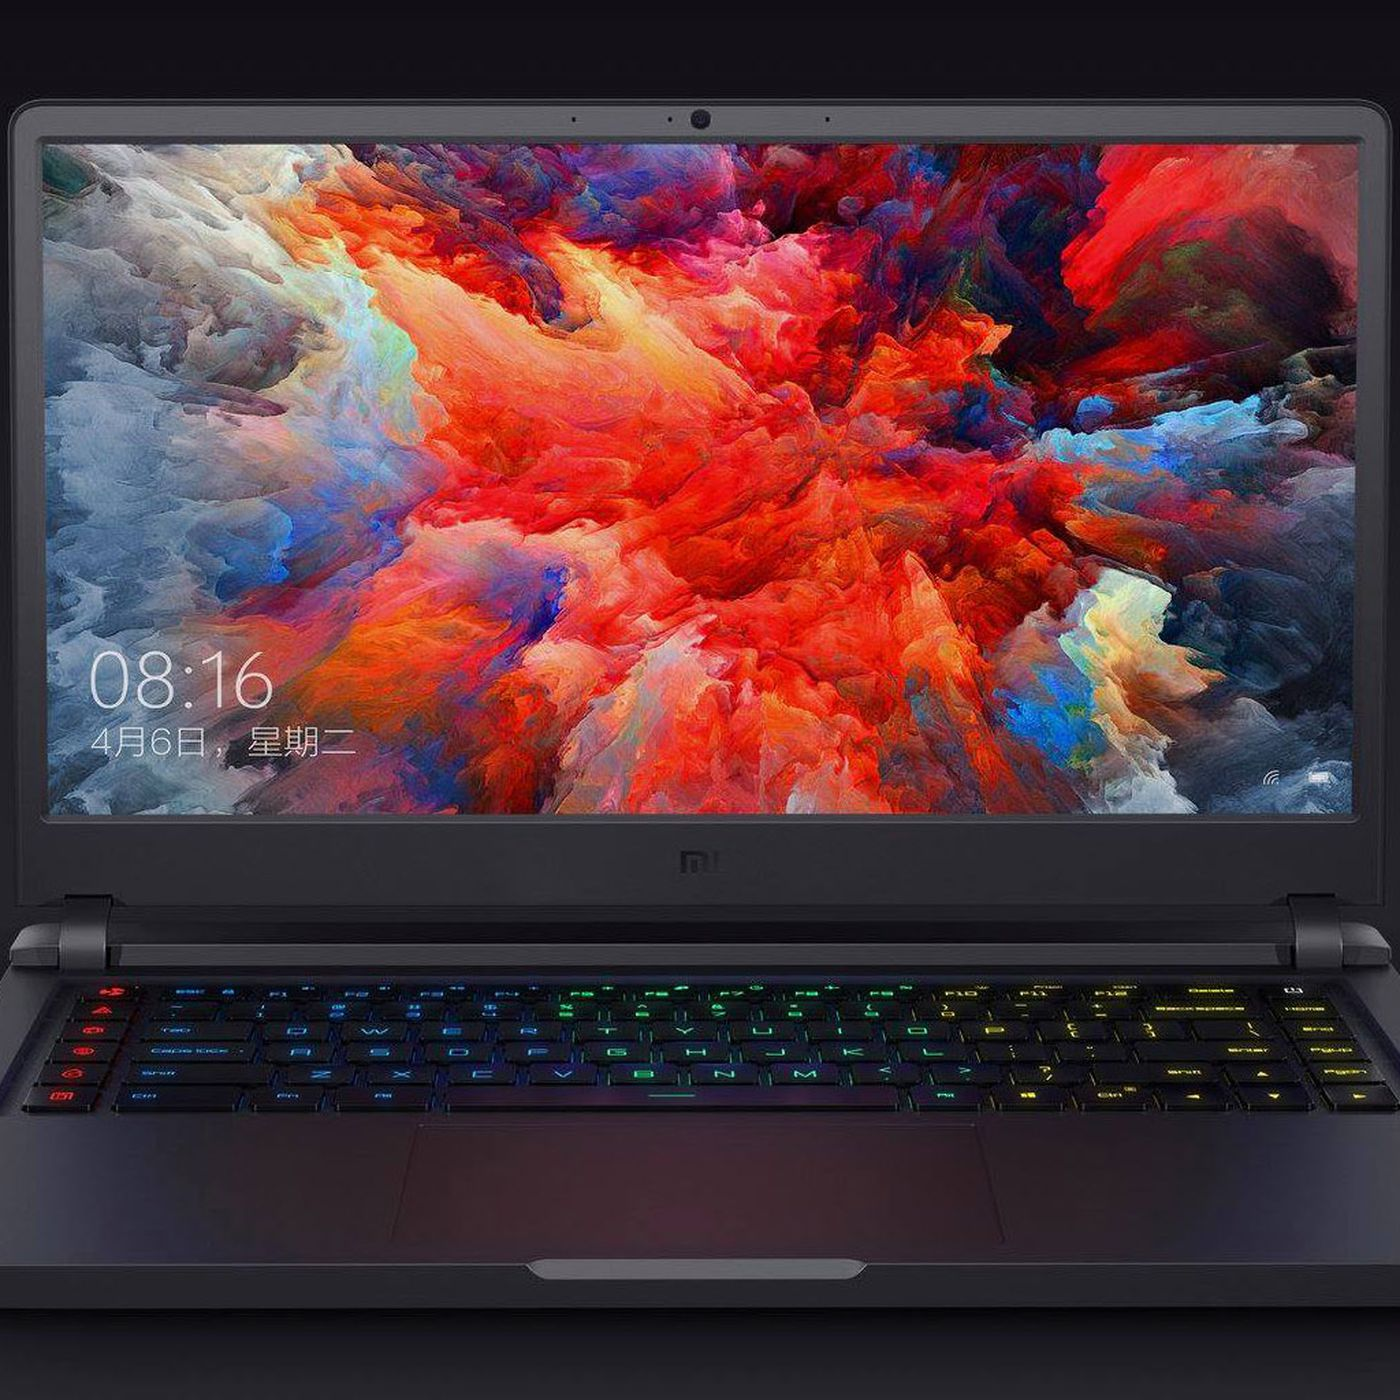 Xiaomi S Mi Gaming Laptop Comes With Nvidia Gtx 1060 Graphics And Costs 1 430 The Verge